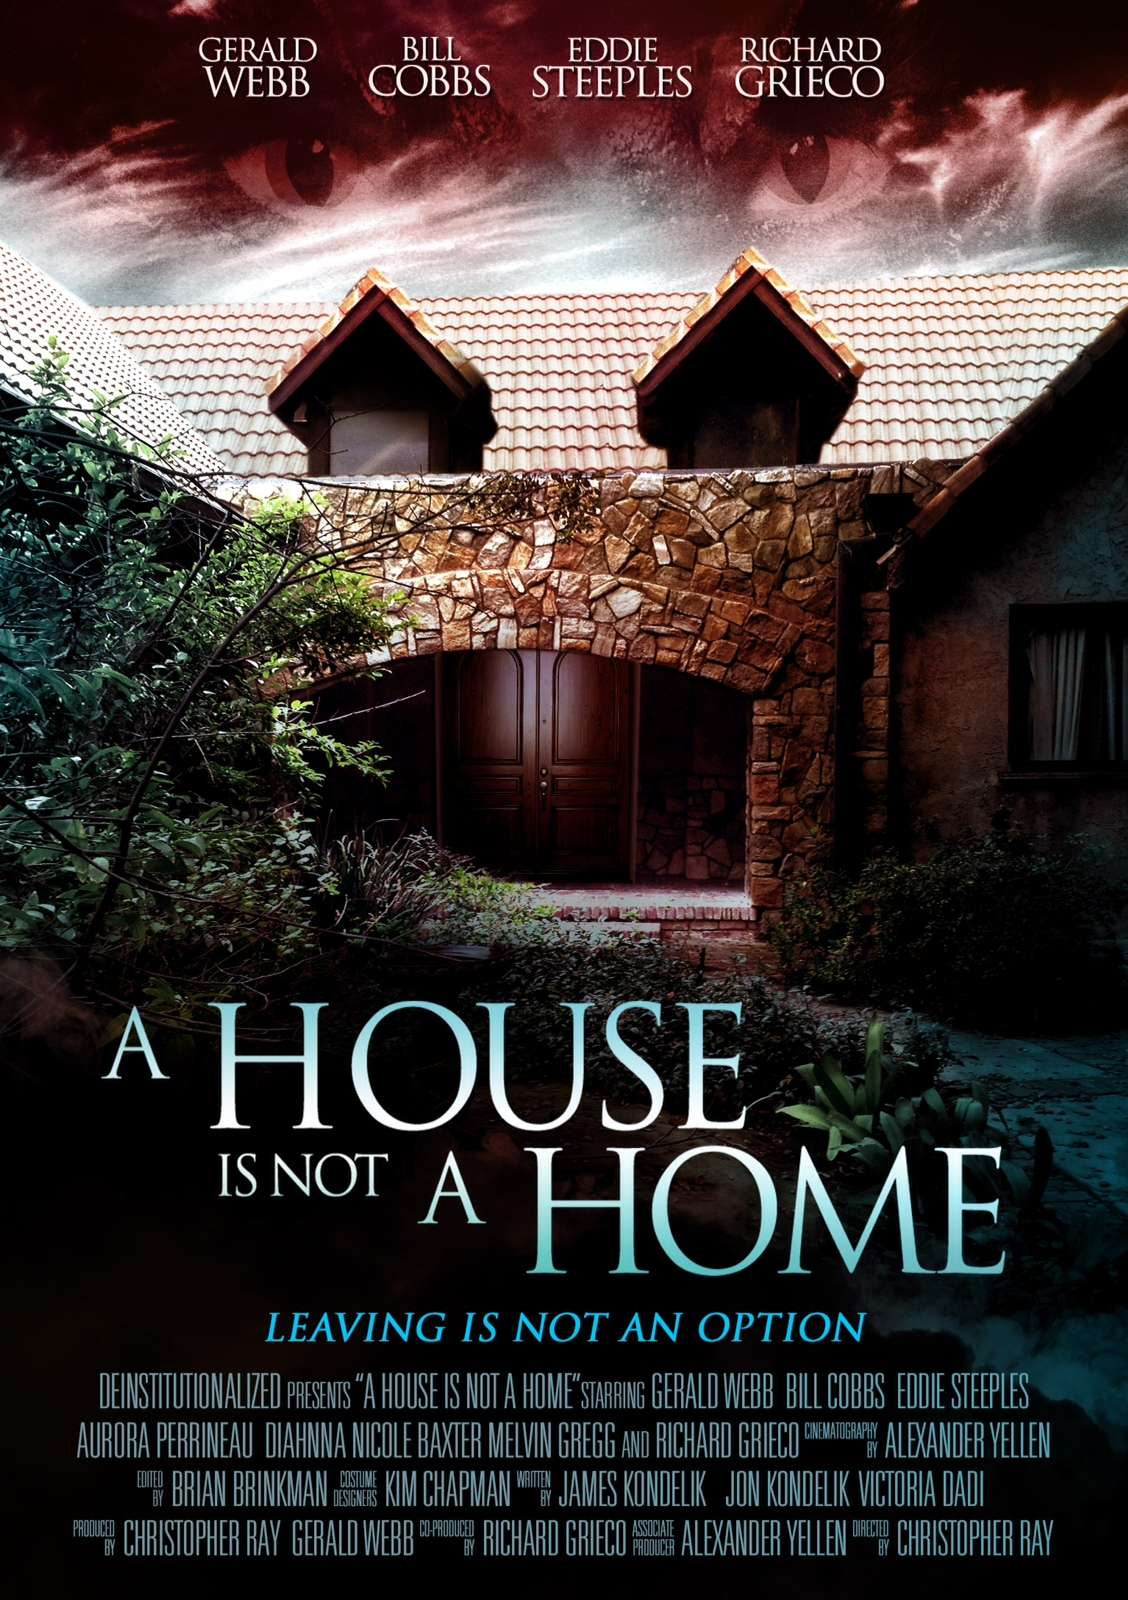 A-House-is-Not-a-Home-Movie-Poster-